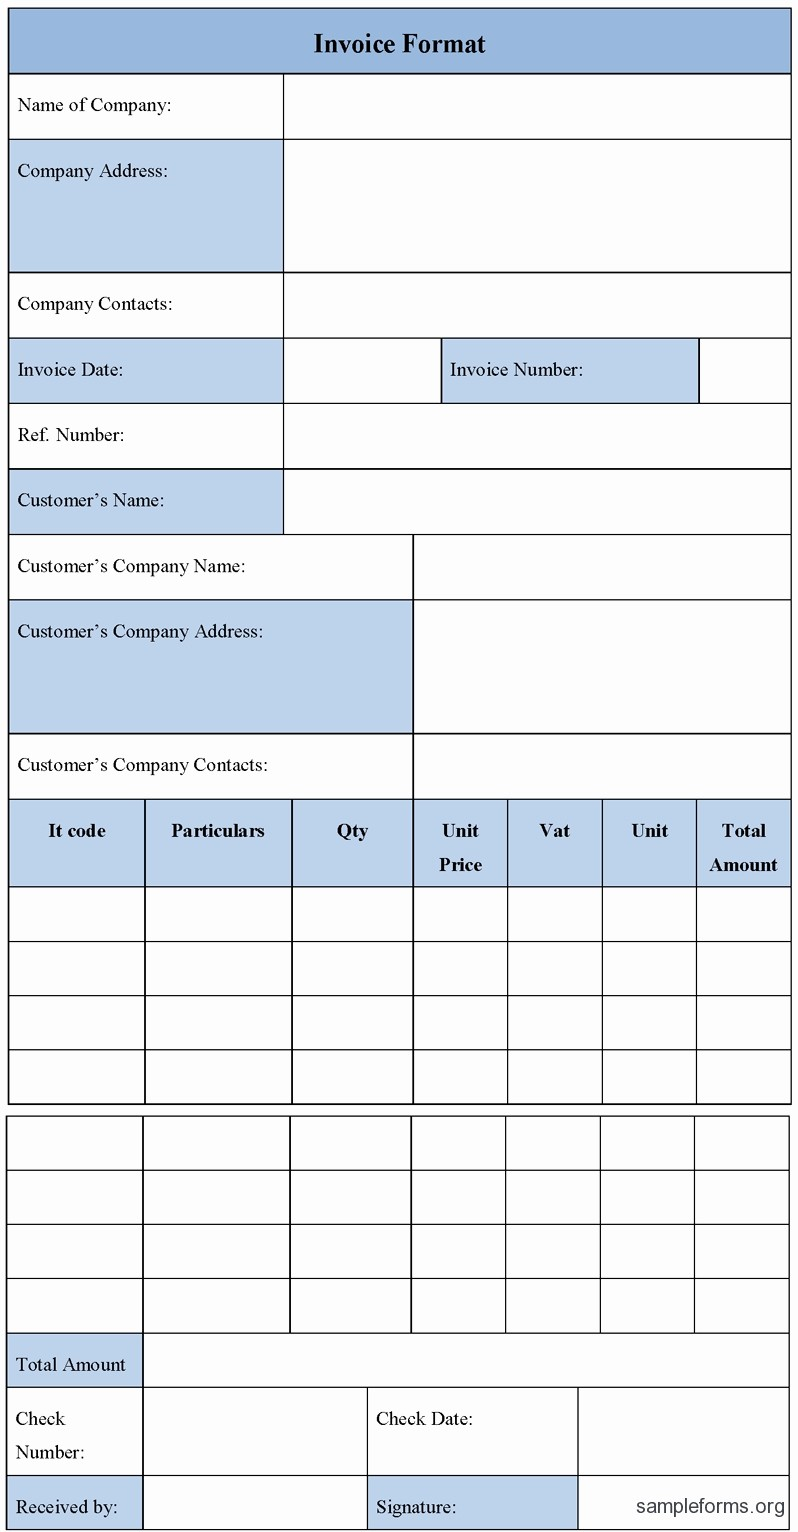 Create An Invoice Free Template Fresh Make Your Own Invoices Invoice Template Ideas